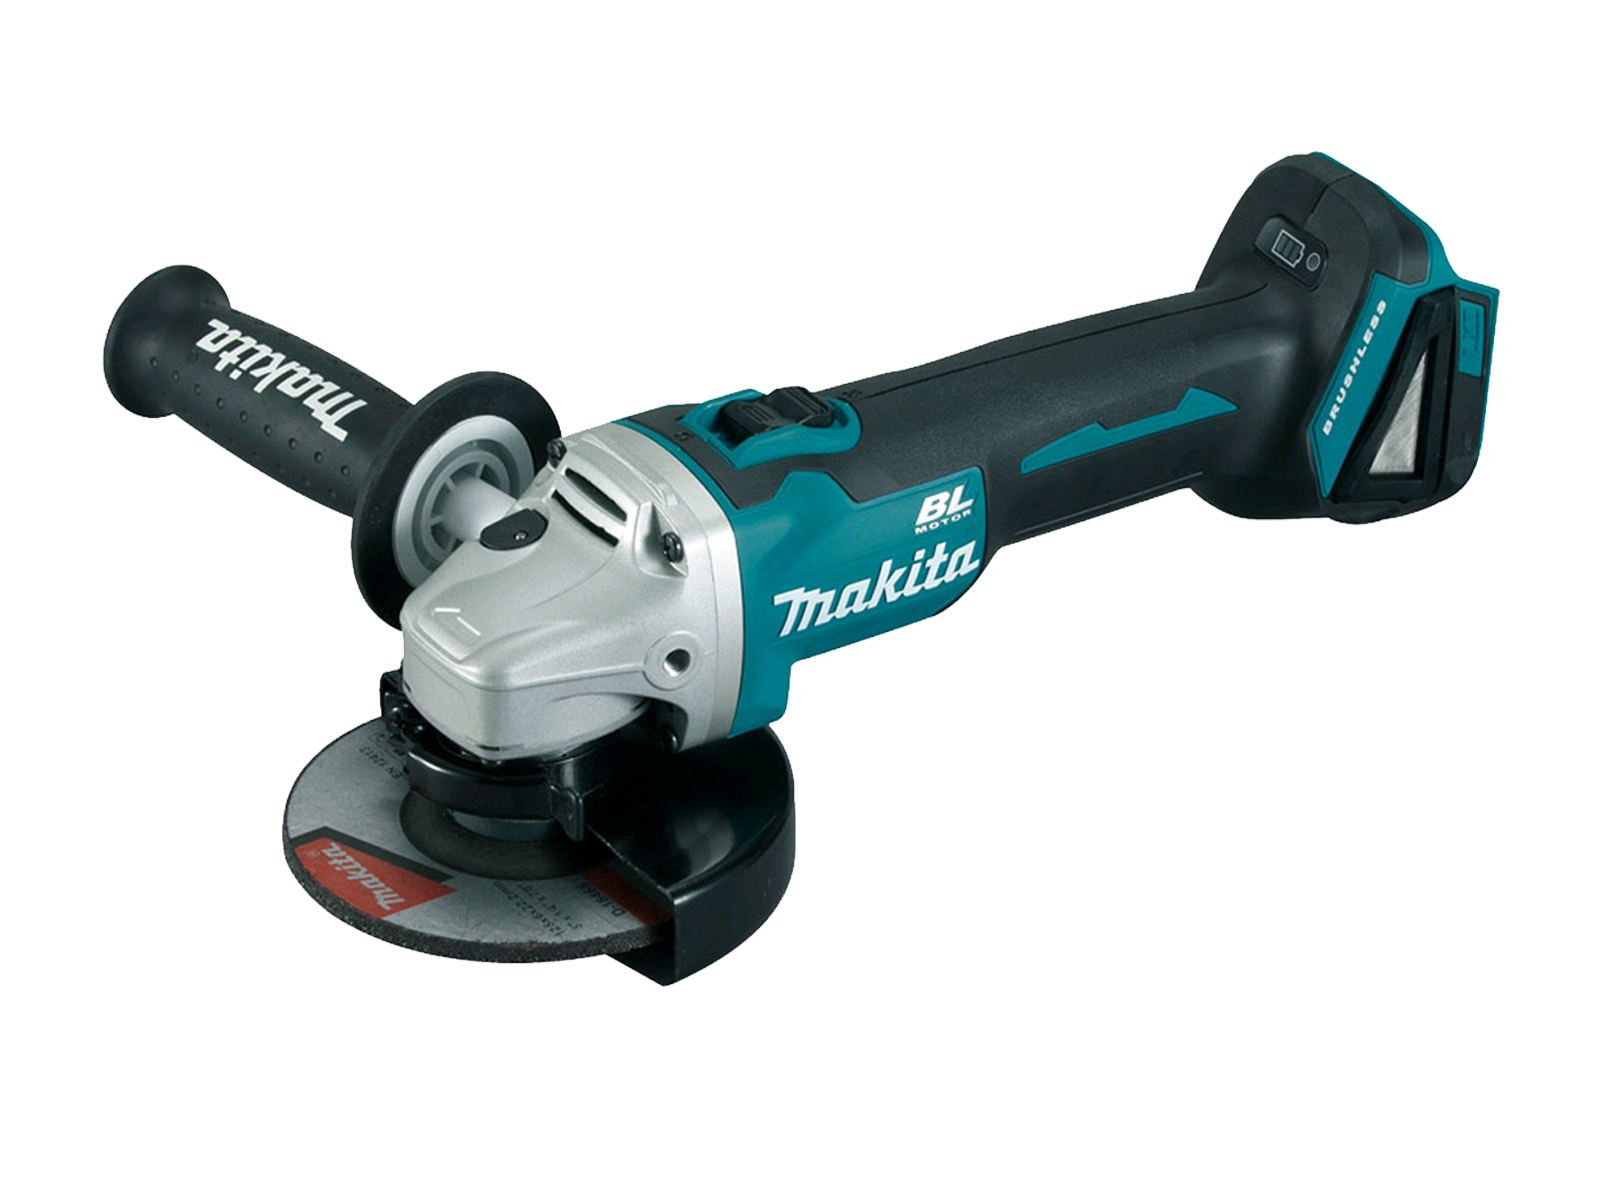 Makita DGA513 18V Brushless 125mm Angle Grinder LXT - Body Only